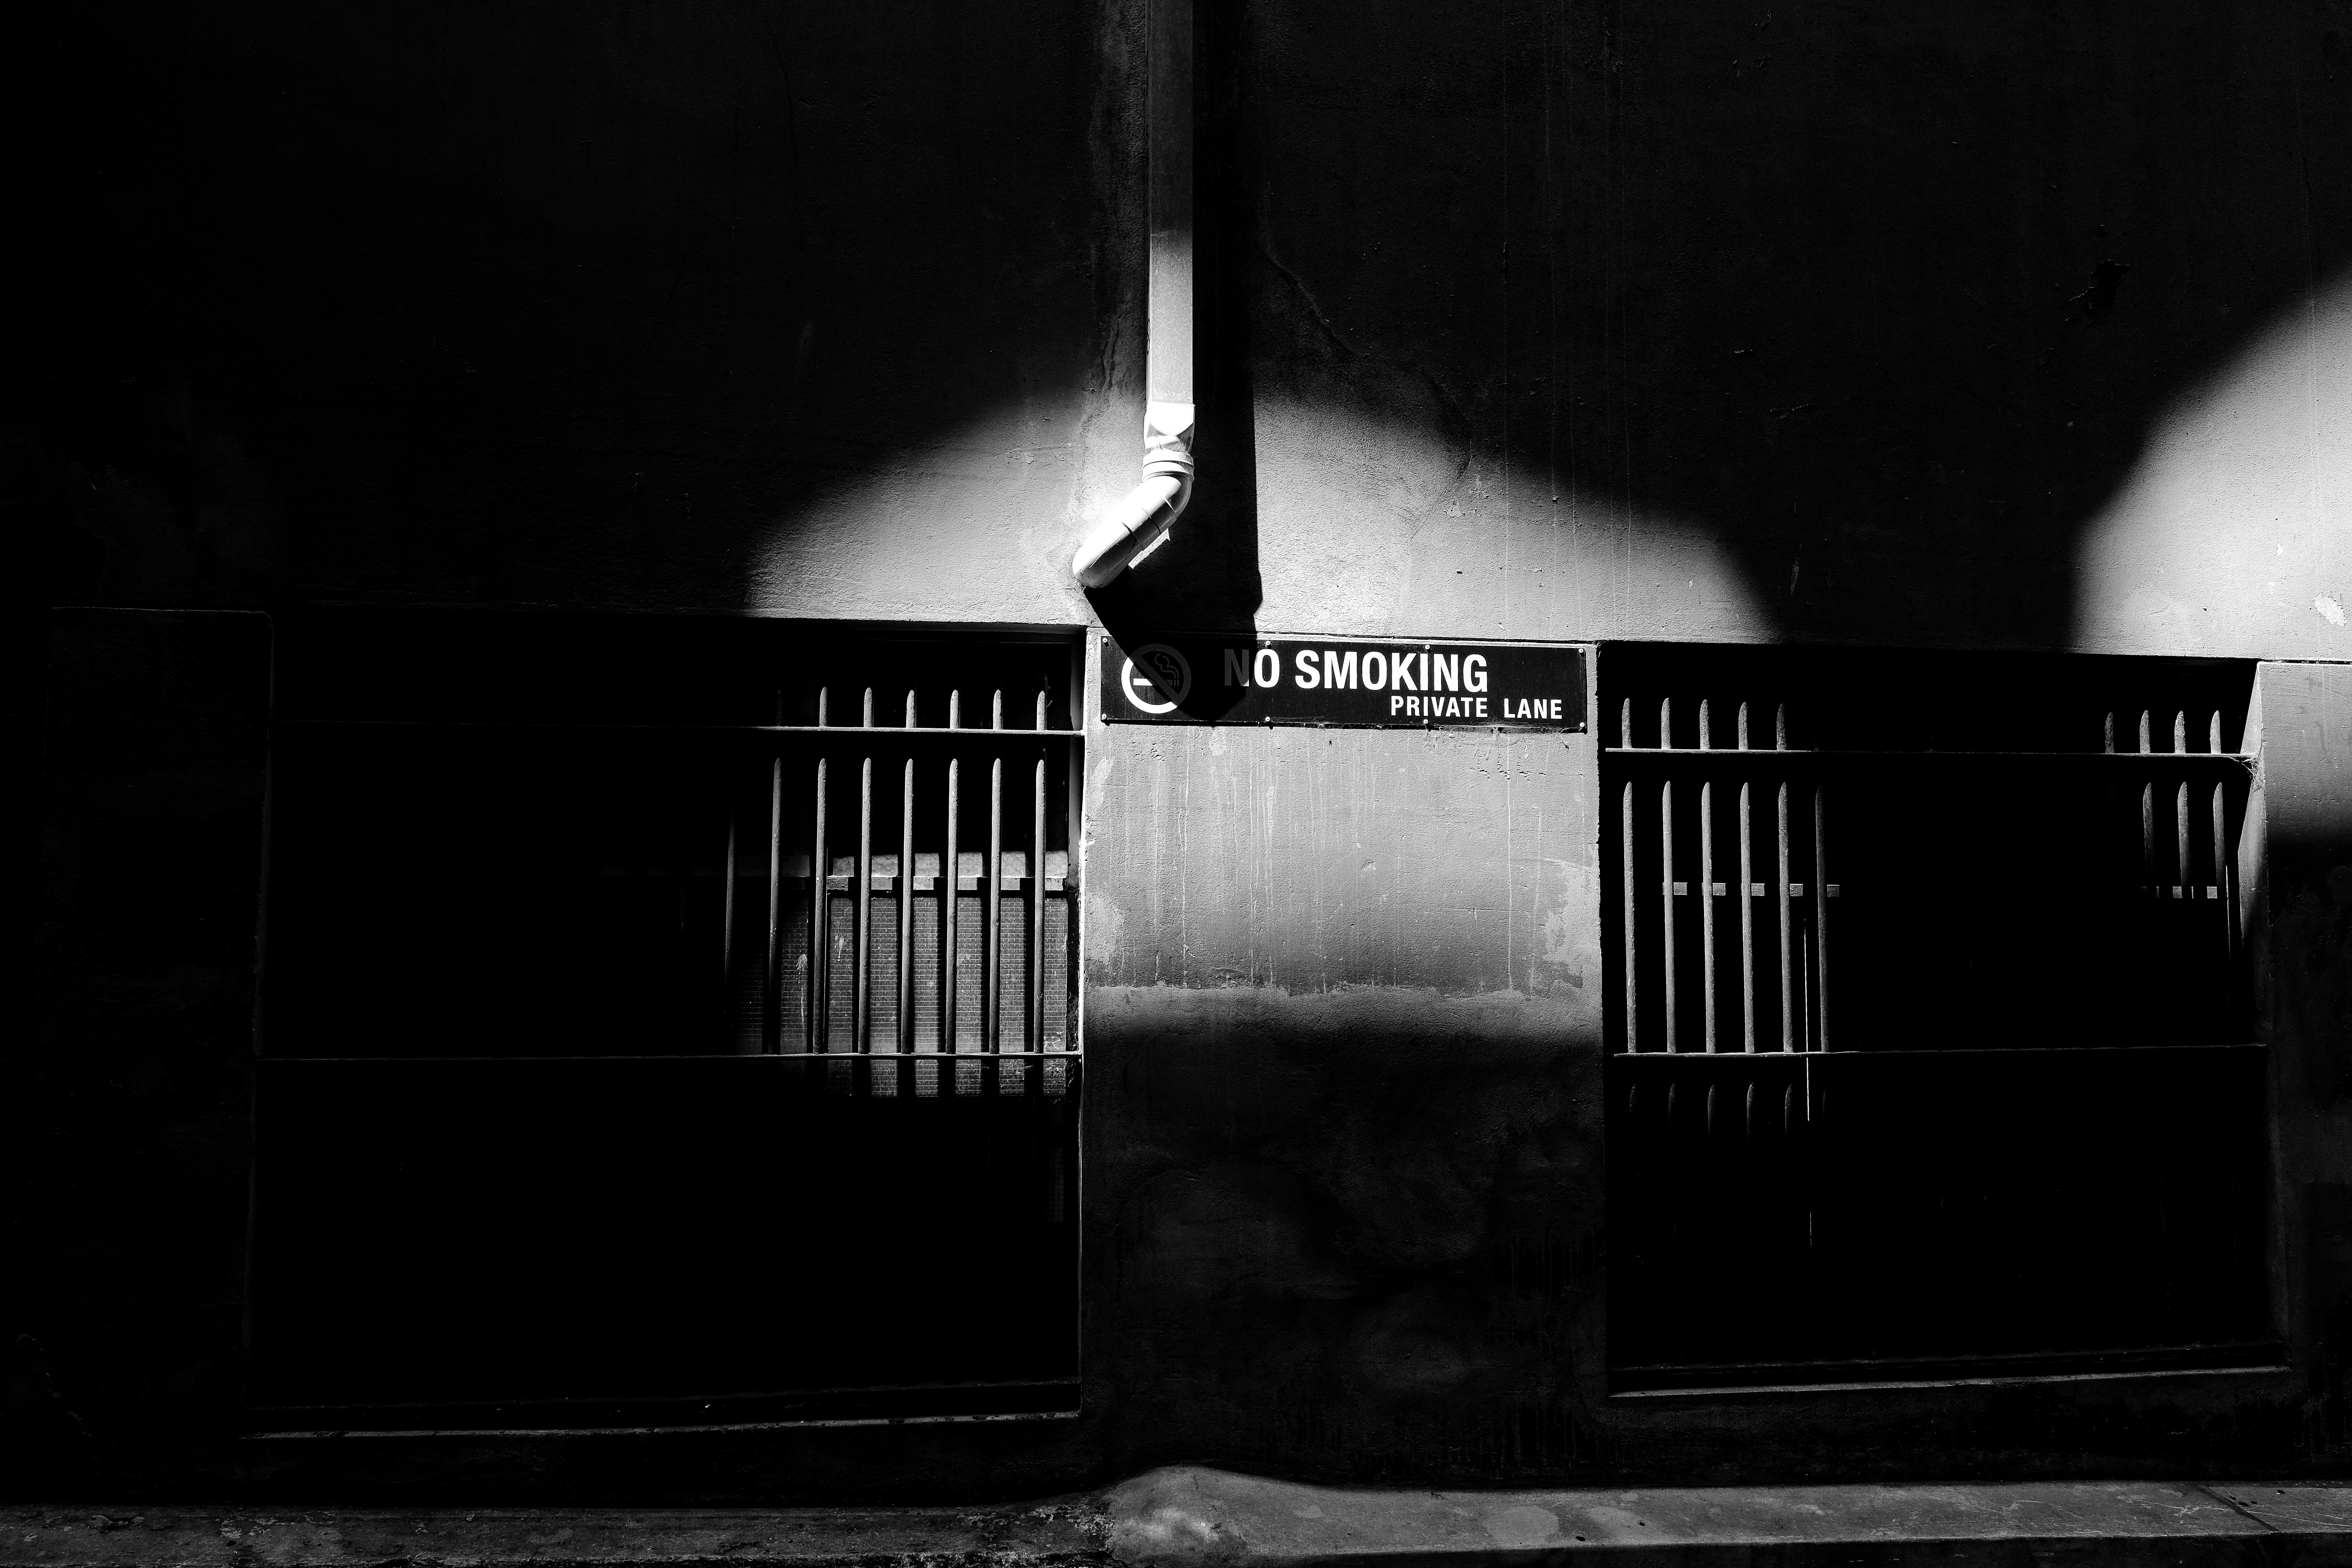 A No Smoking sign is seen on a wall in a dark alley in Melbourne.